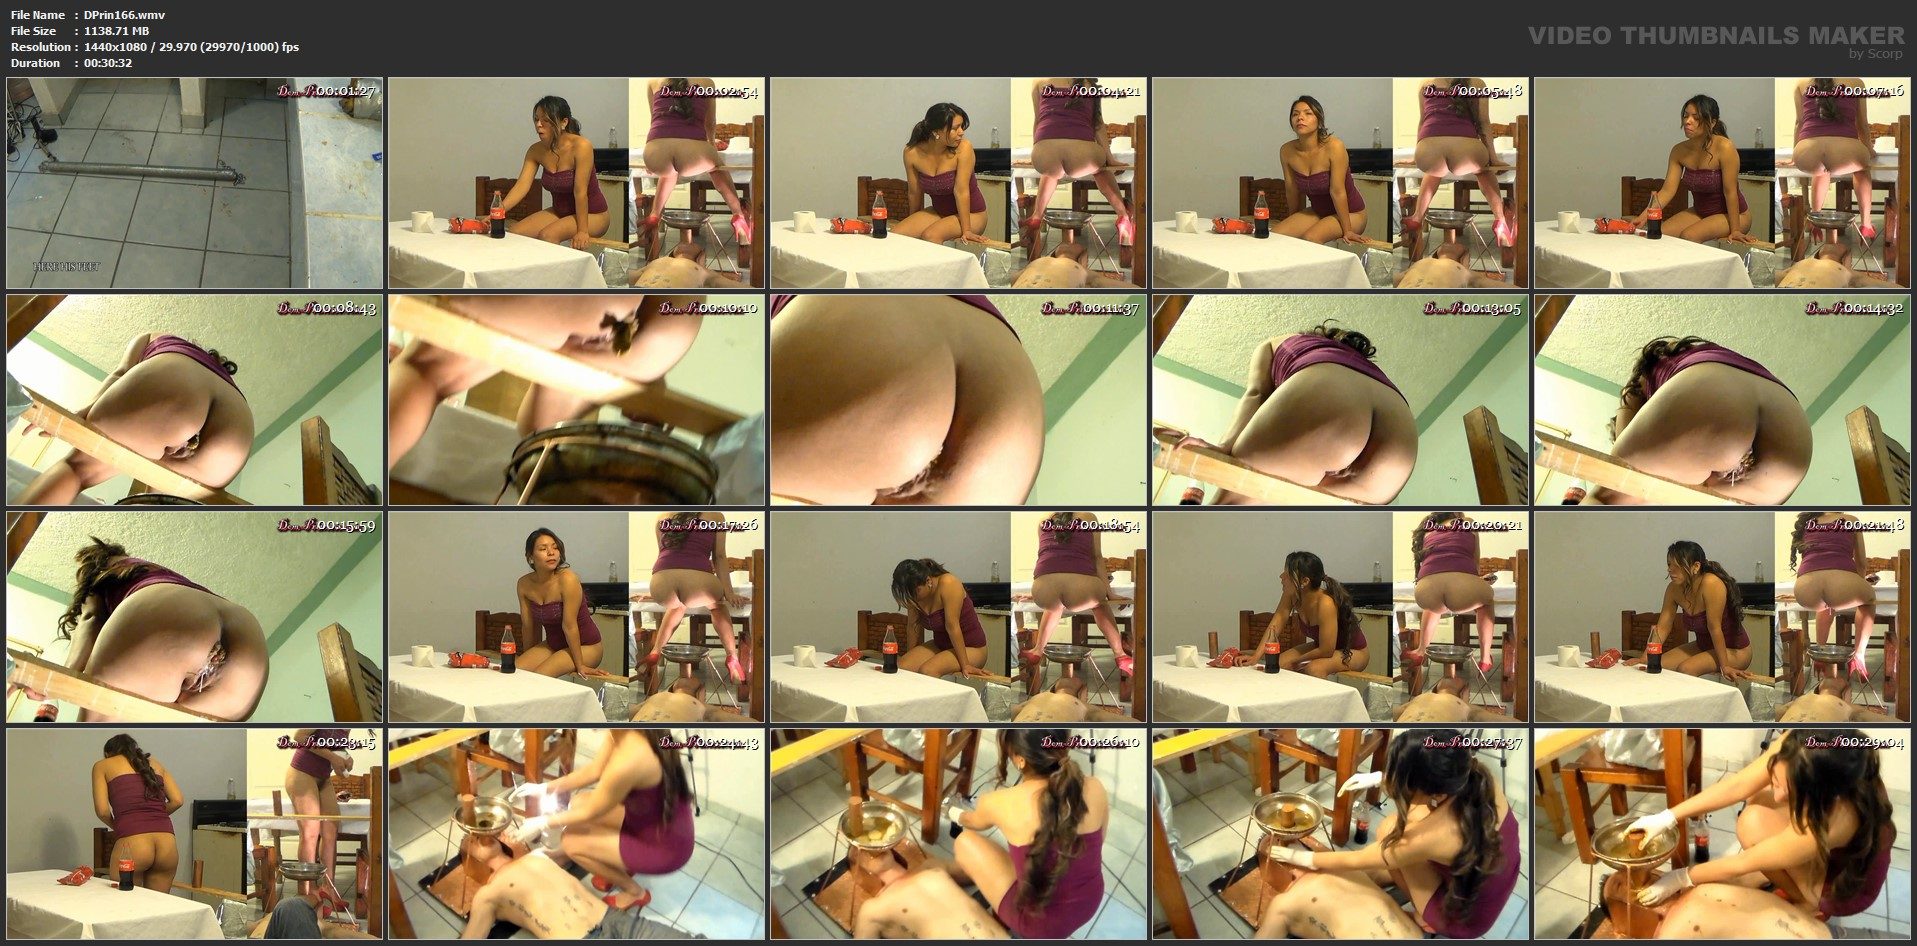 [DOM-PRINCESS] Toilet Mouth High Pressure System Part 1 Adison [FULL HD][1080p][WMV]